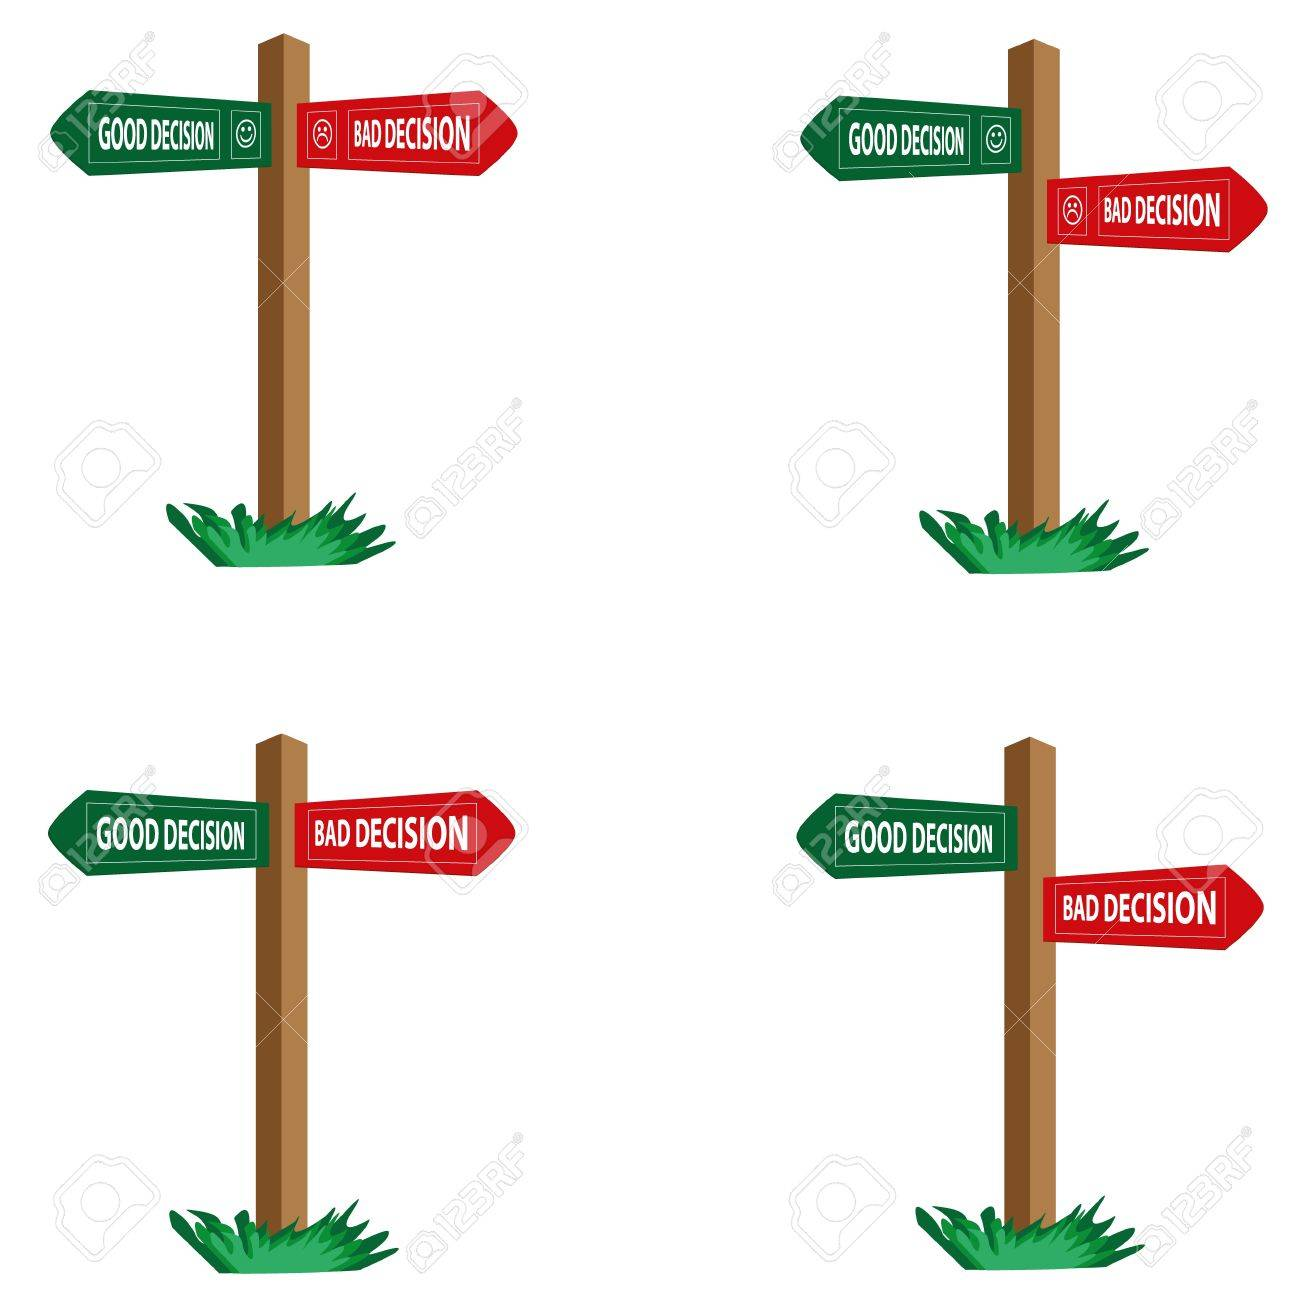 Decision Signs Stock Vector - 22086486